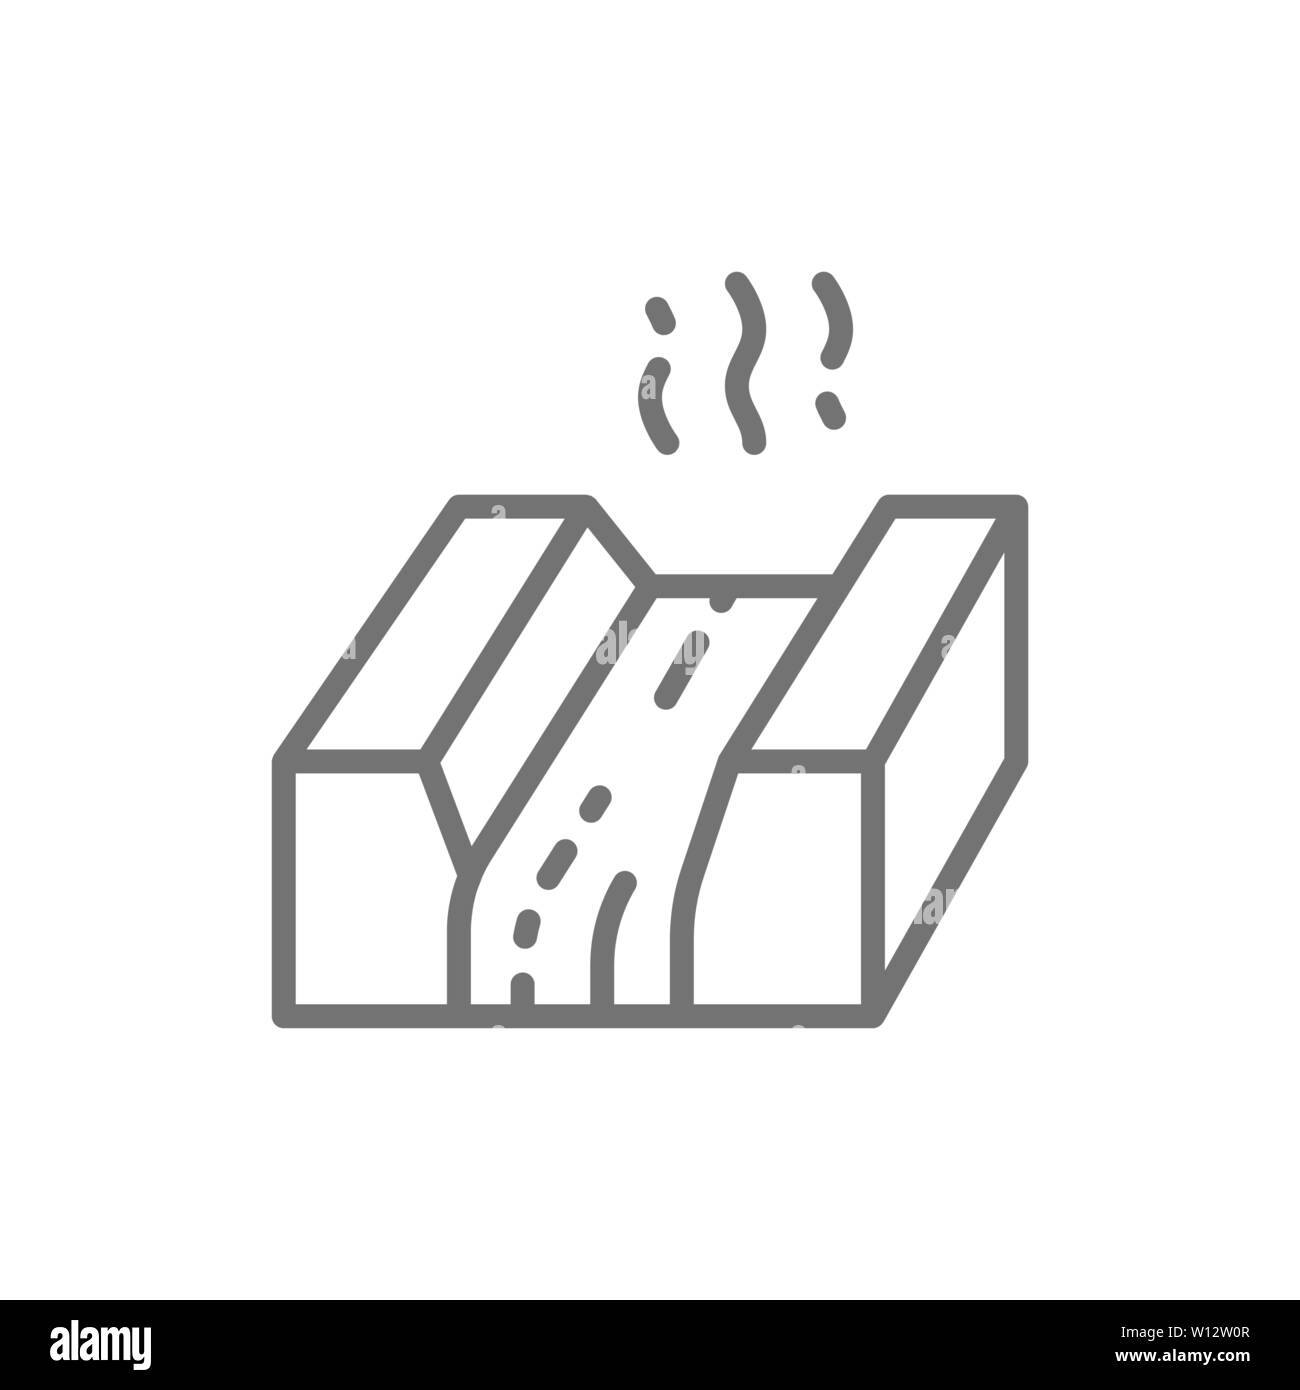 Molten metal, lava, magma, metallurgy industry line icon Stock Vector Image  & Art - Alamy